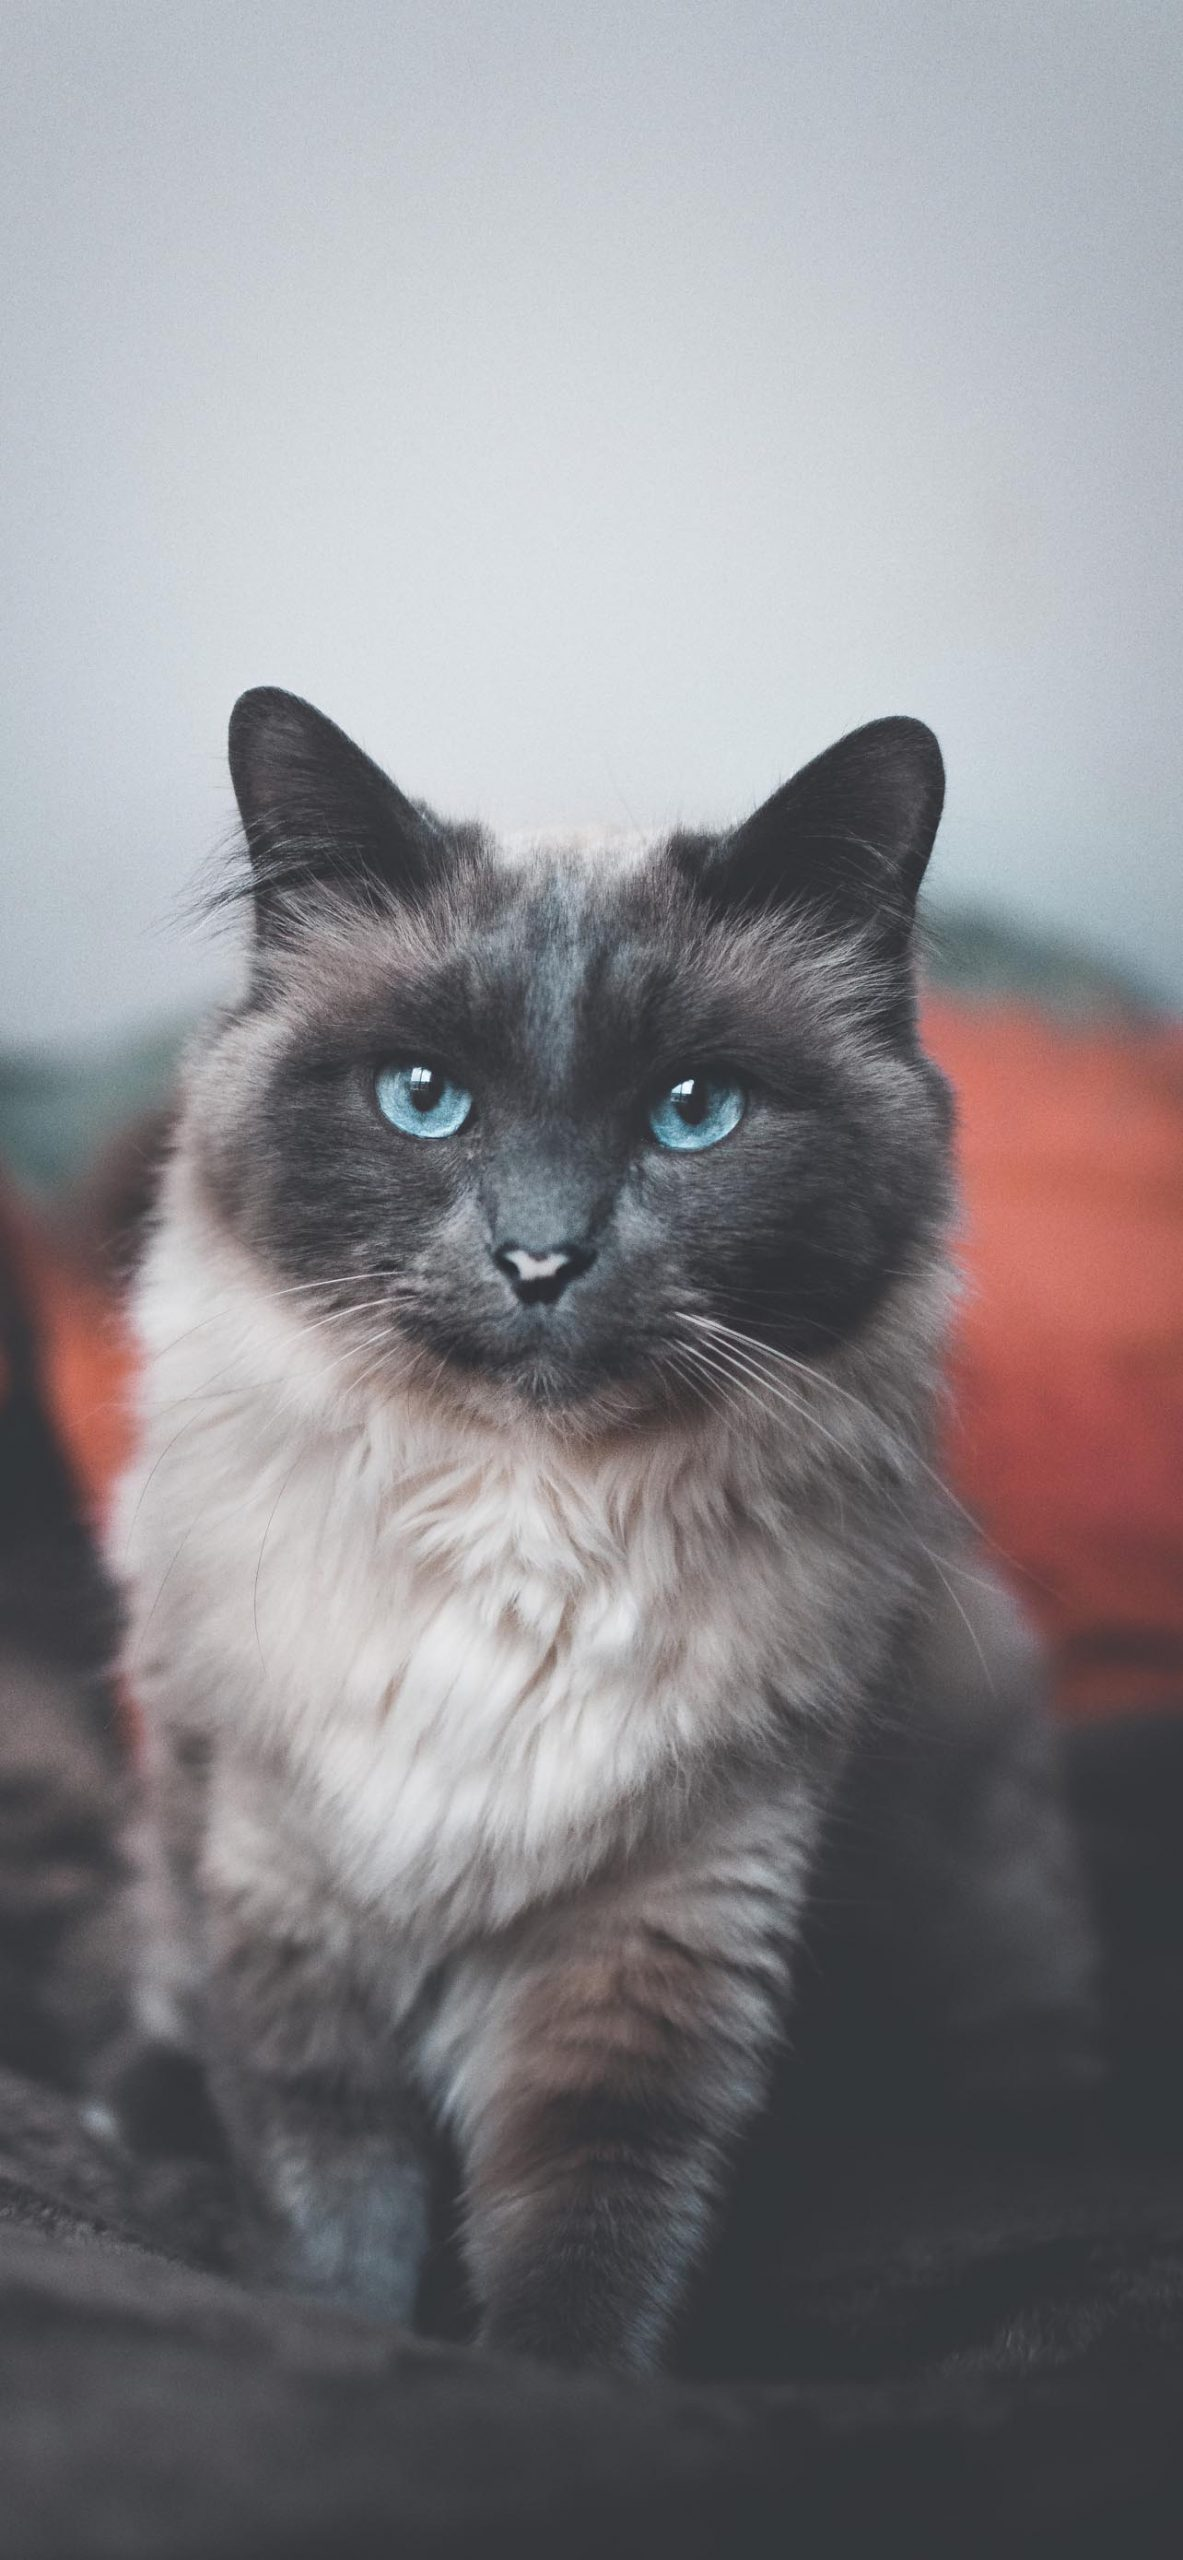 Lovely & Amazing Cat with Beautiful Blue Eyes